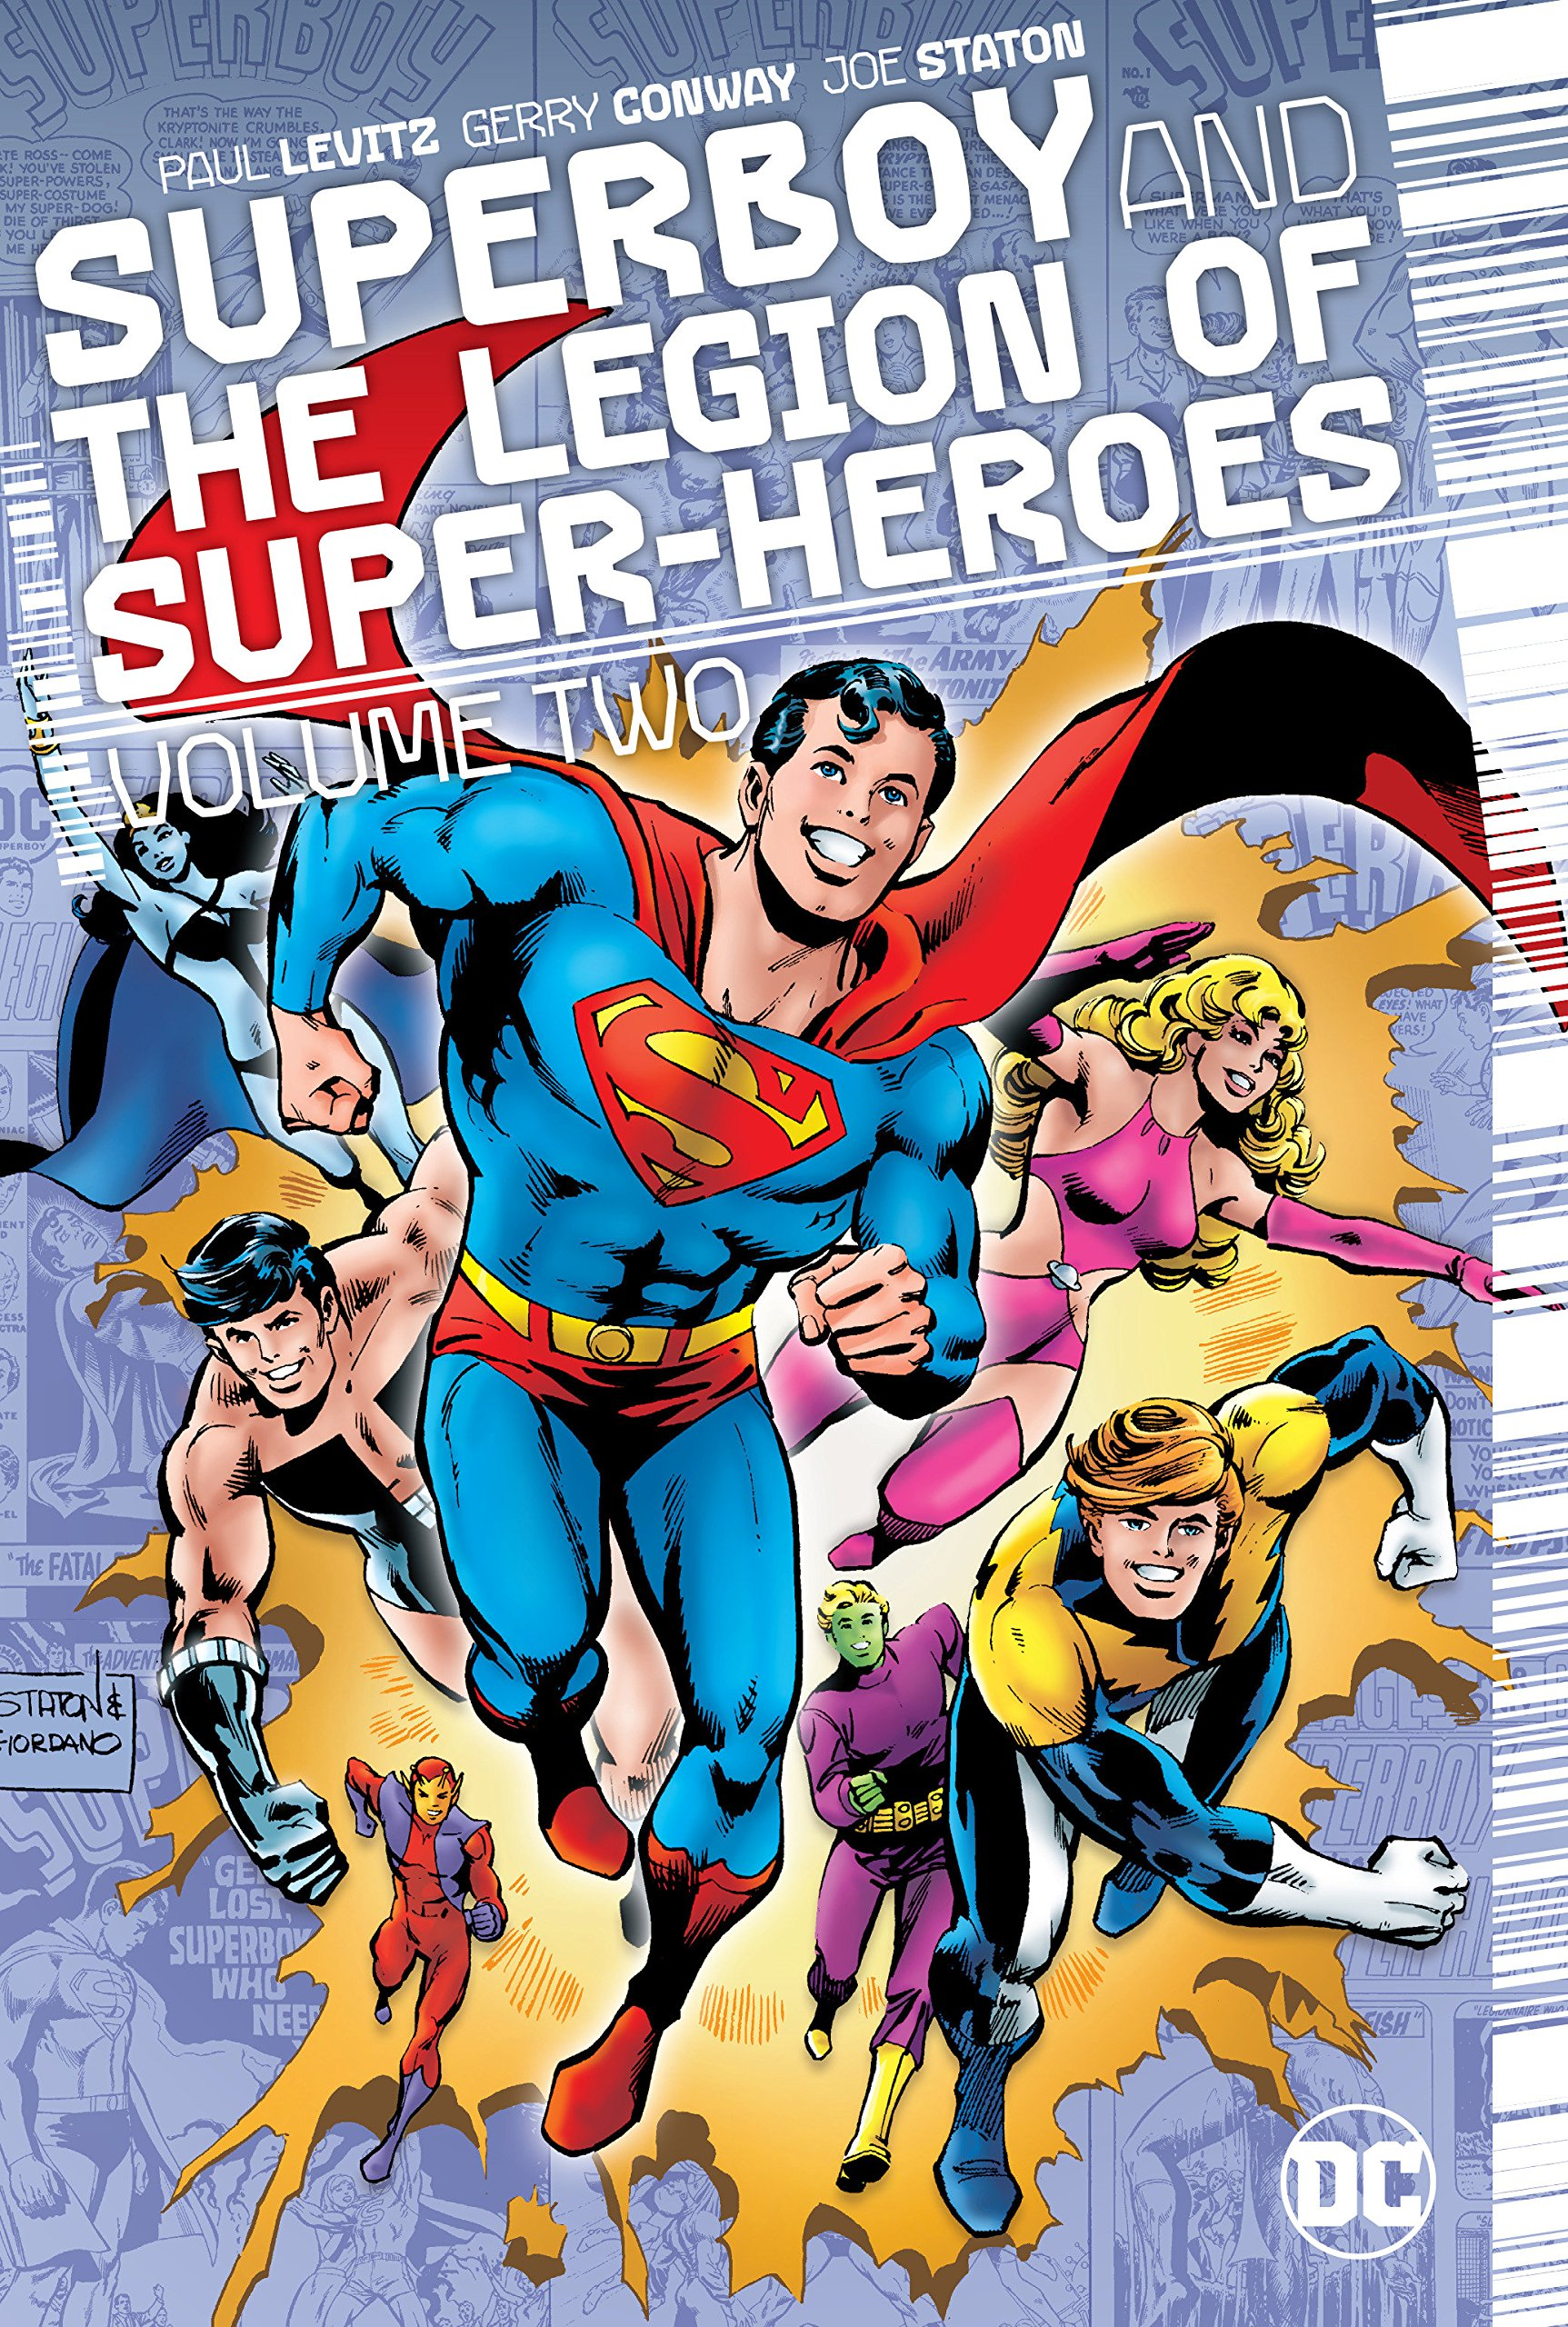 Superboy and The Legion of Super-Heros Volume Two - cover